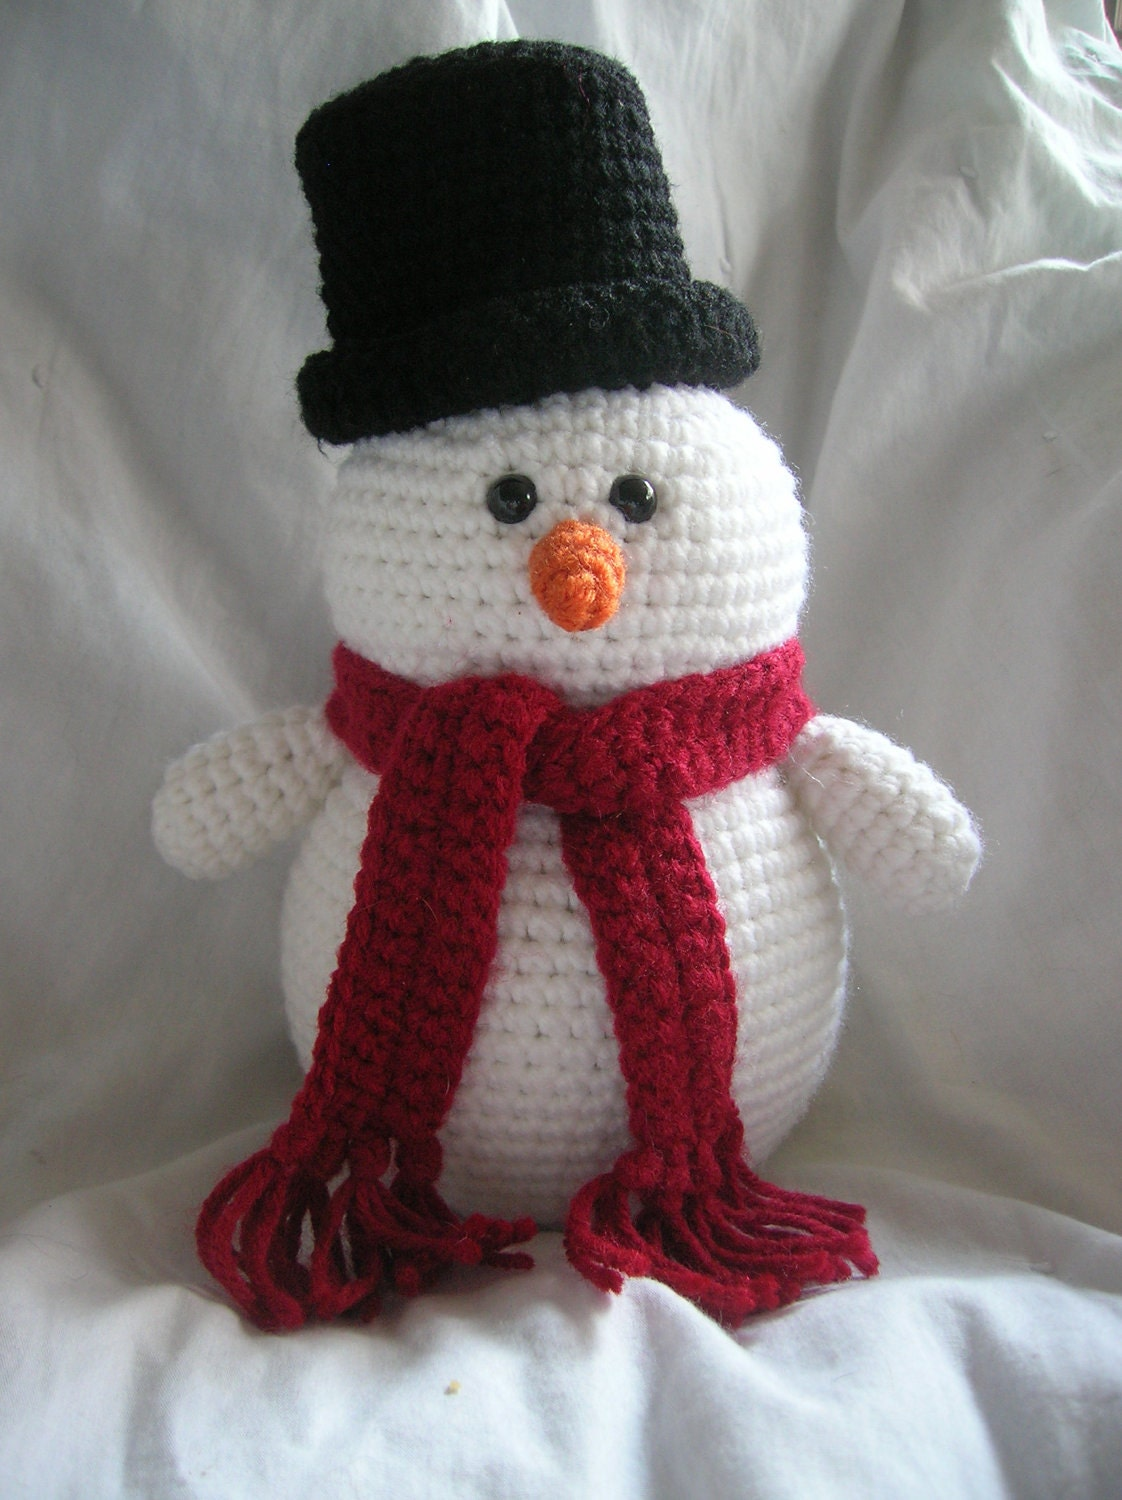 Crochet Patterns Free Snowman : Steve the Snowman Amigurumi Crochet Plush PATTERN ONLY PDF